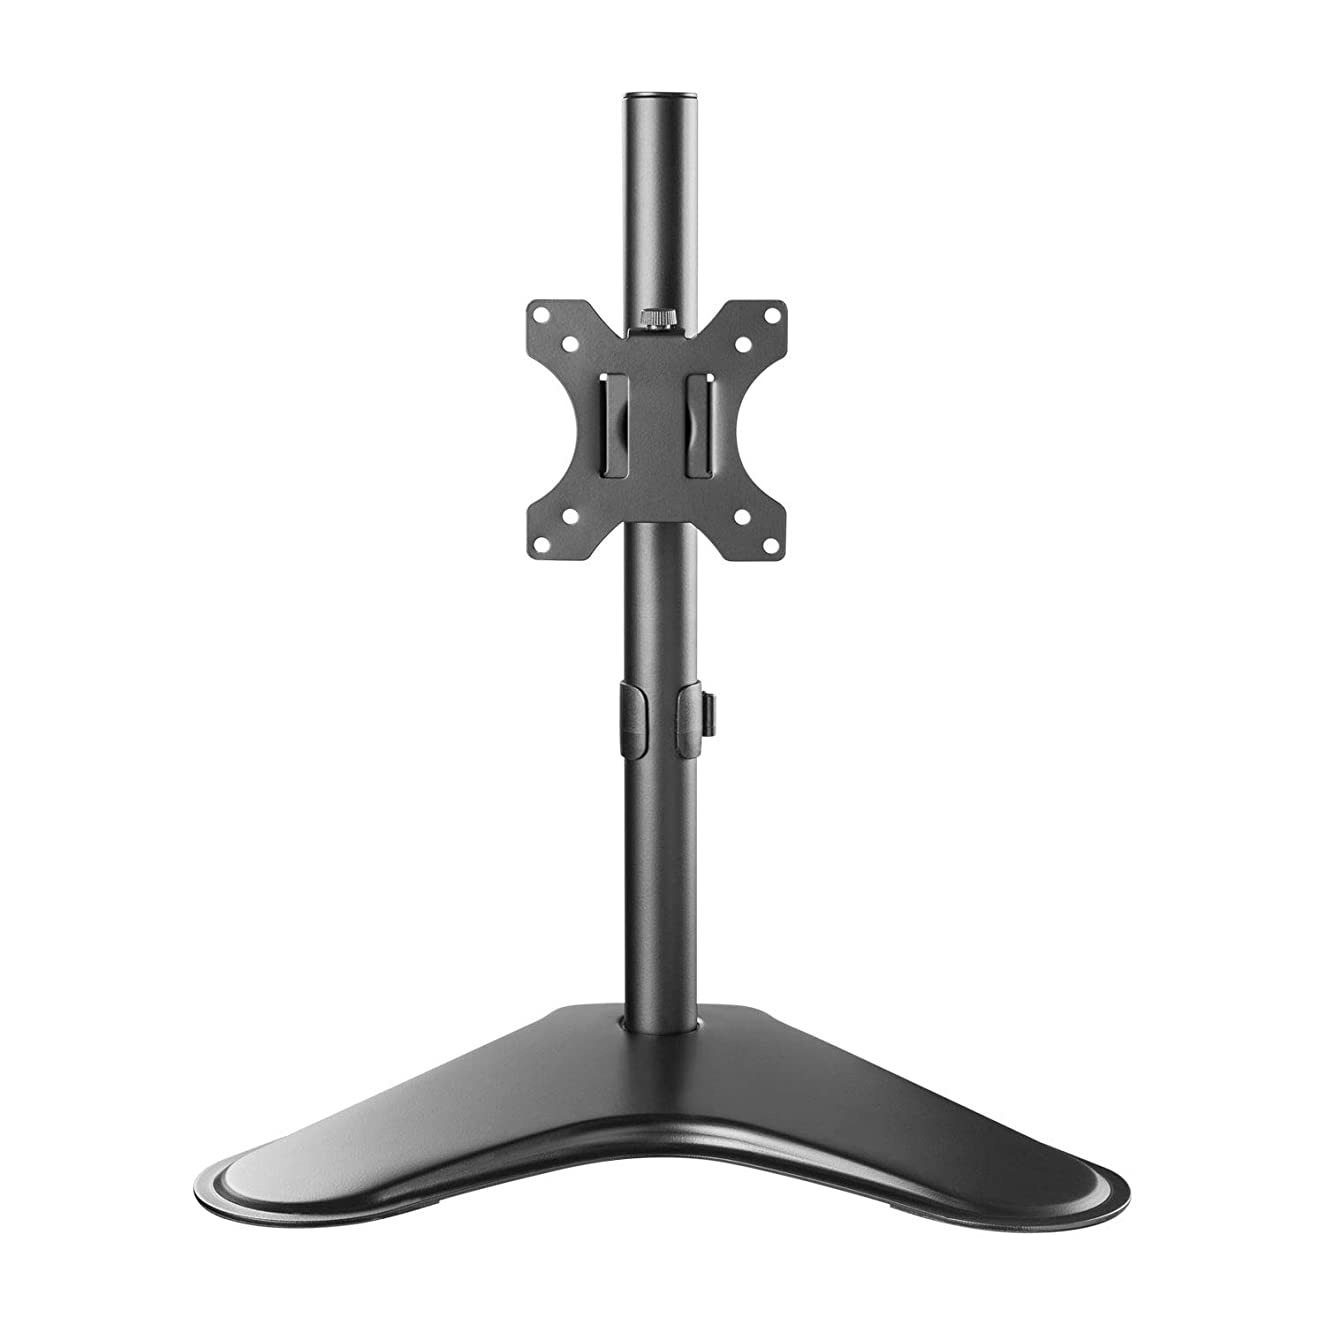 "WALI Free Standing Single LCD Monitor Fully Adjustable Desk Mount Fits One Screen up to 32"", 17.6 lbs. Weight Capacity (MF001), Black"